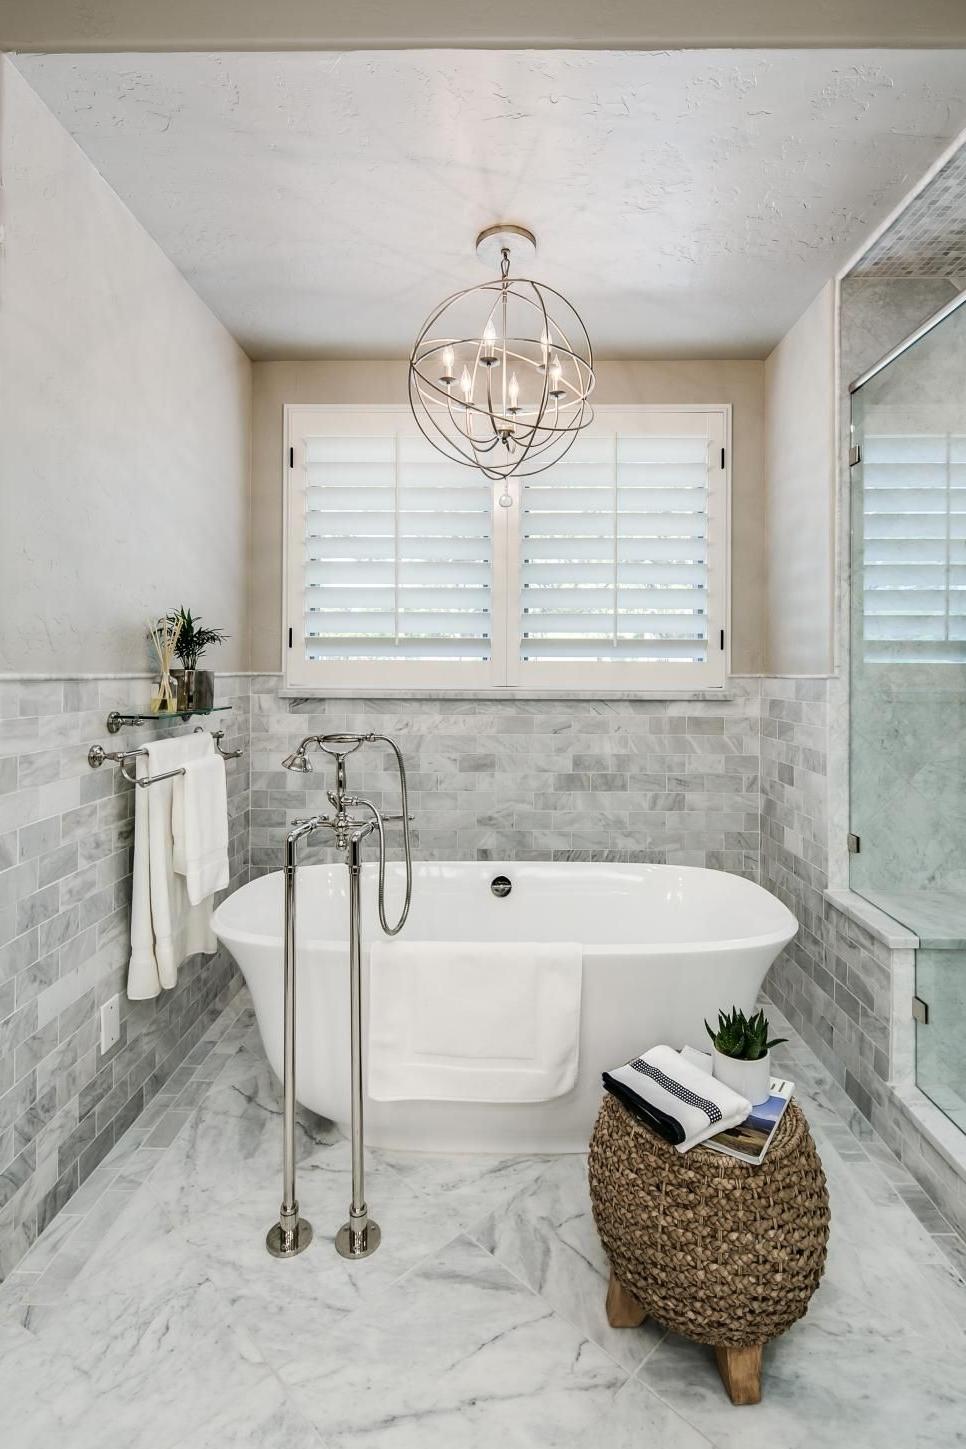 Modern Bathroom Chandeliers With Regard To Favorite A Metal Orb Chandelier Is Centered Above The Freestanding Tub In (View 4 of 20)